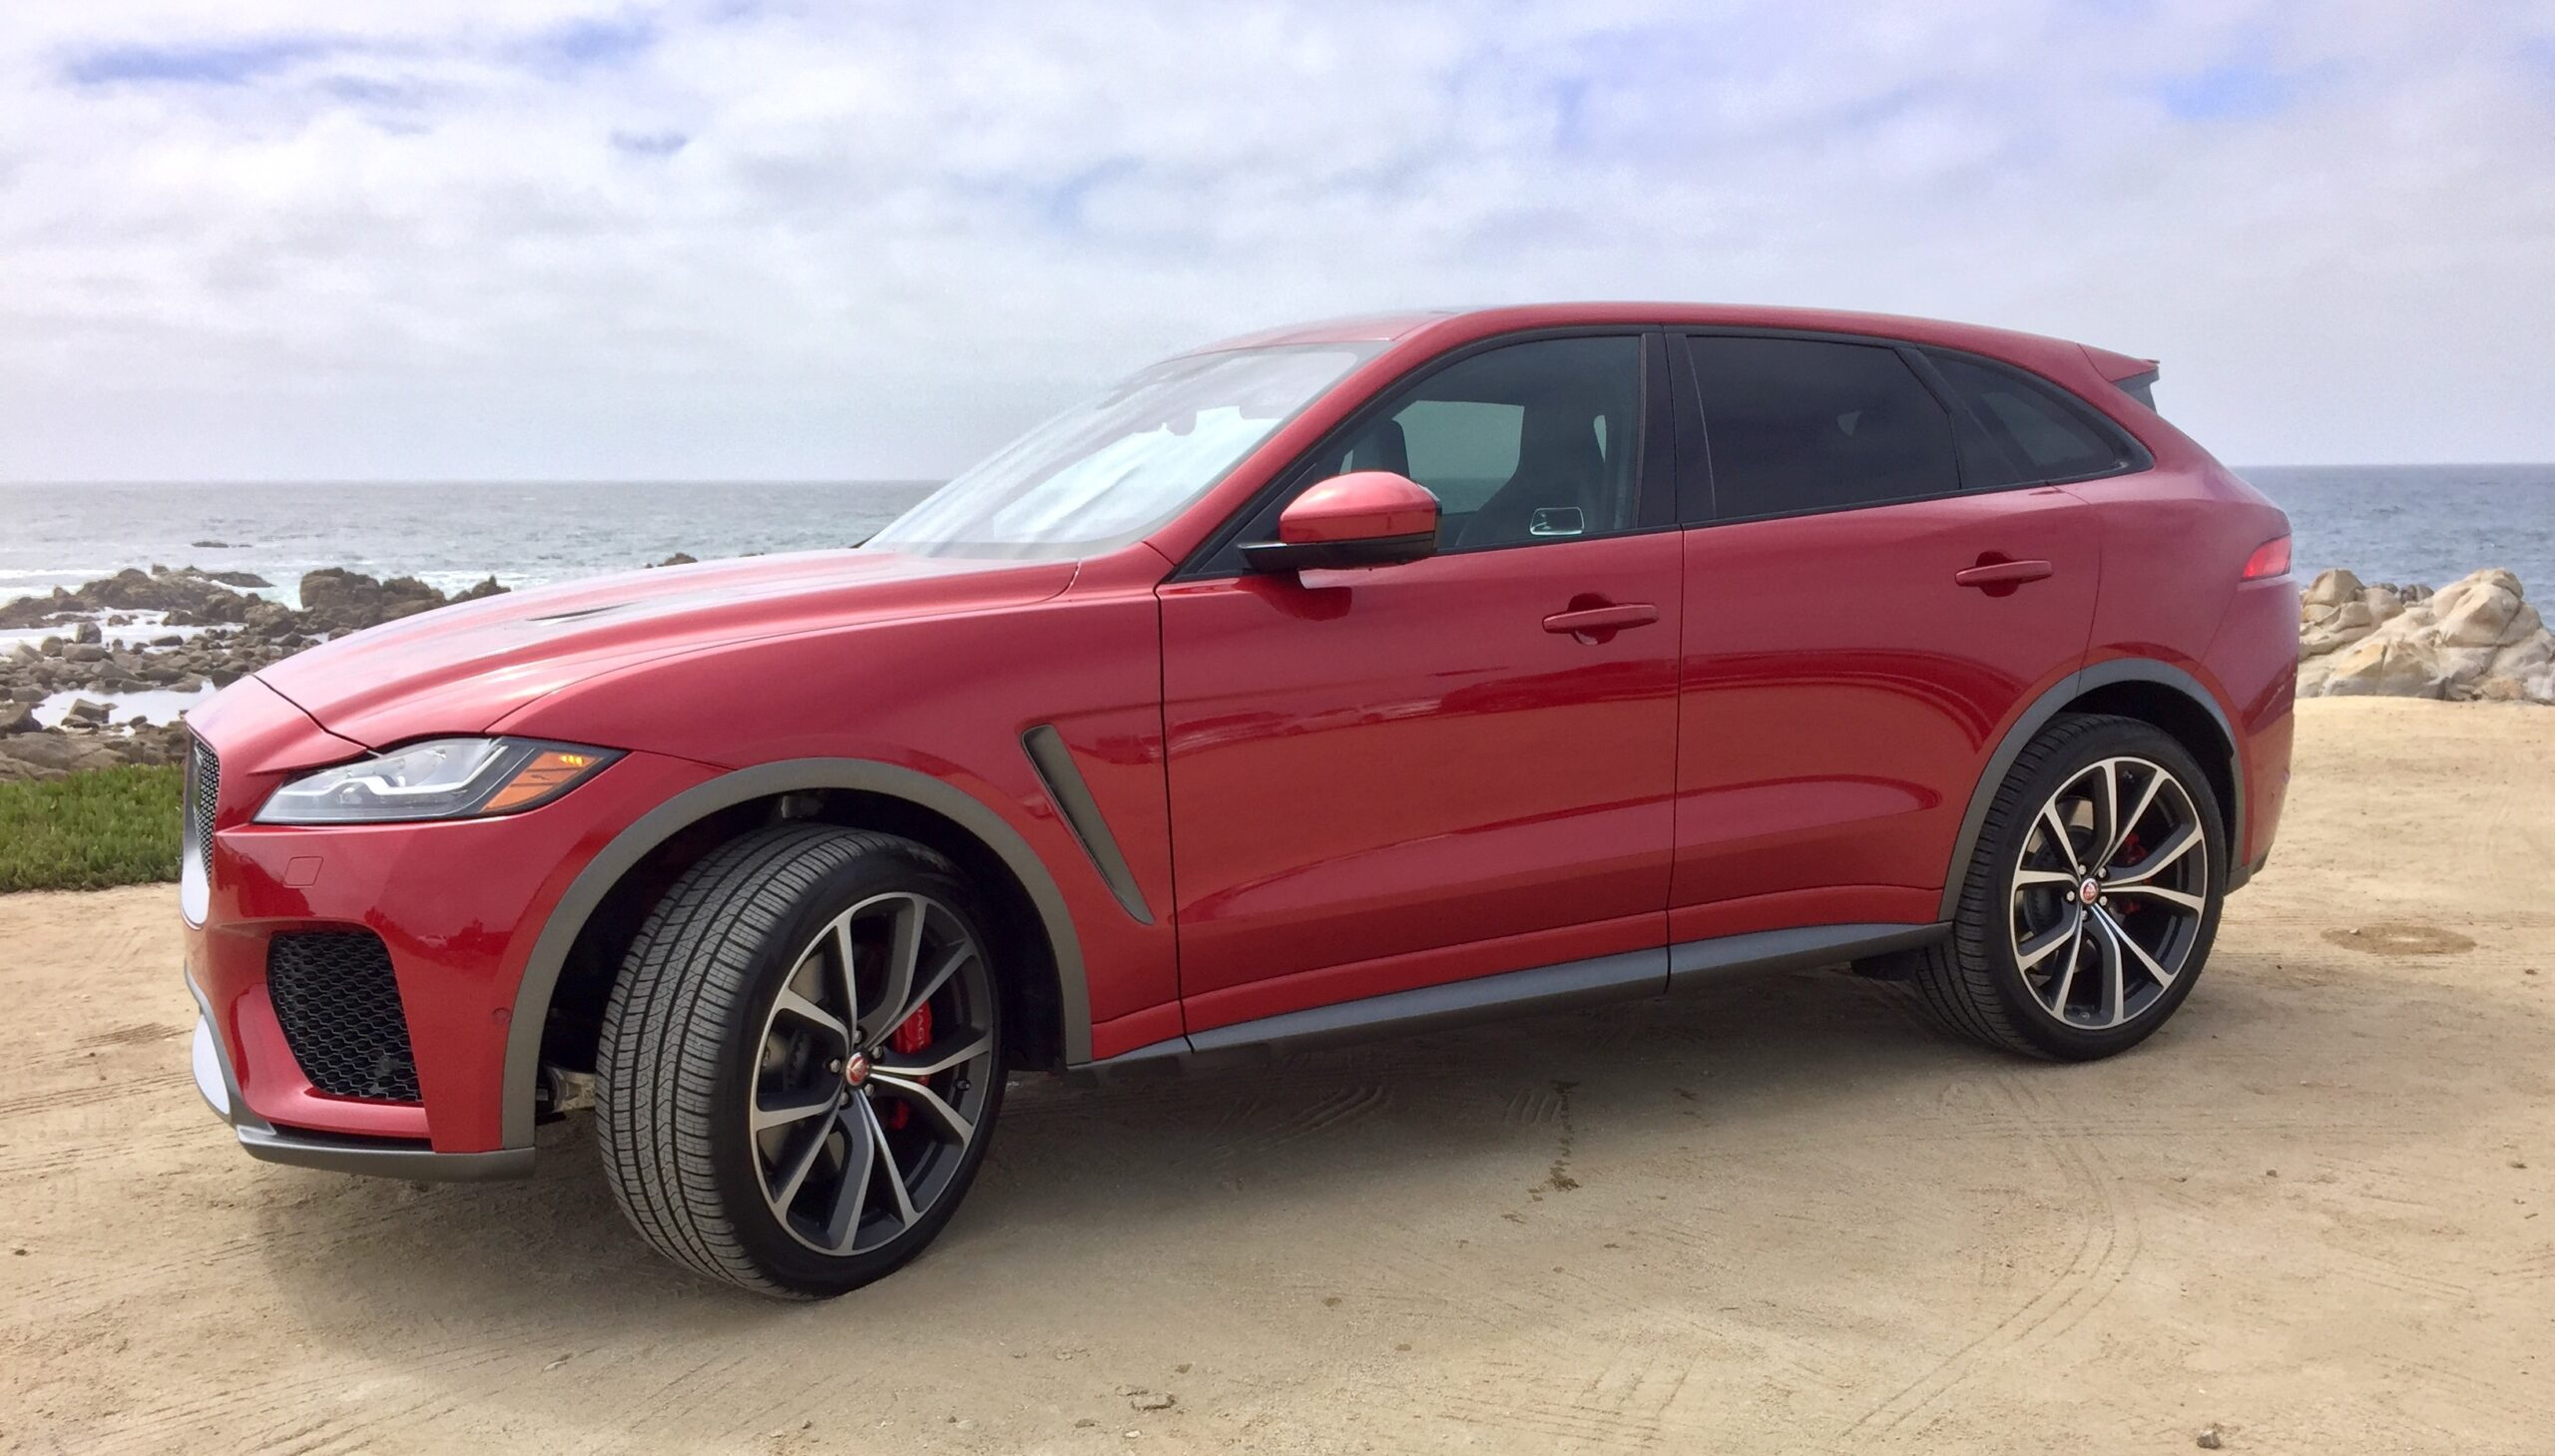 An exterior view of the F-Pace SVR